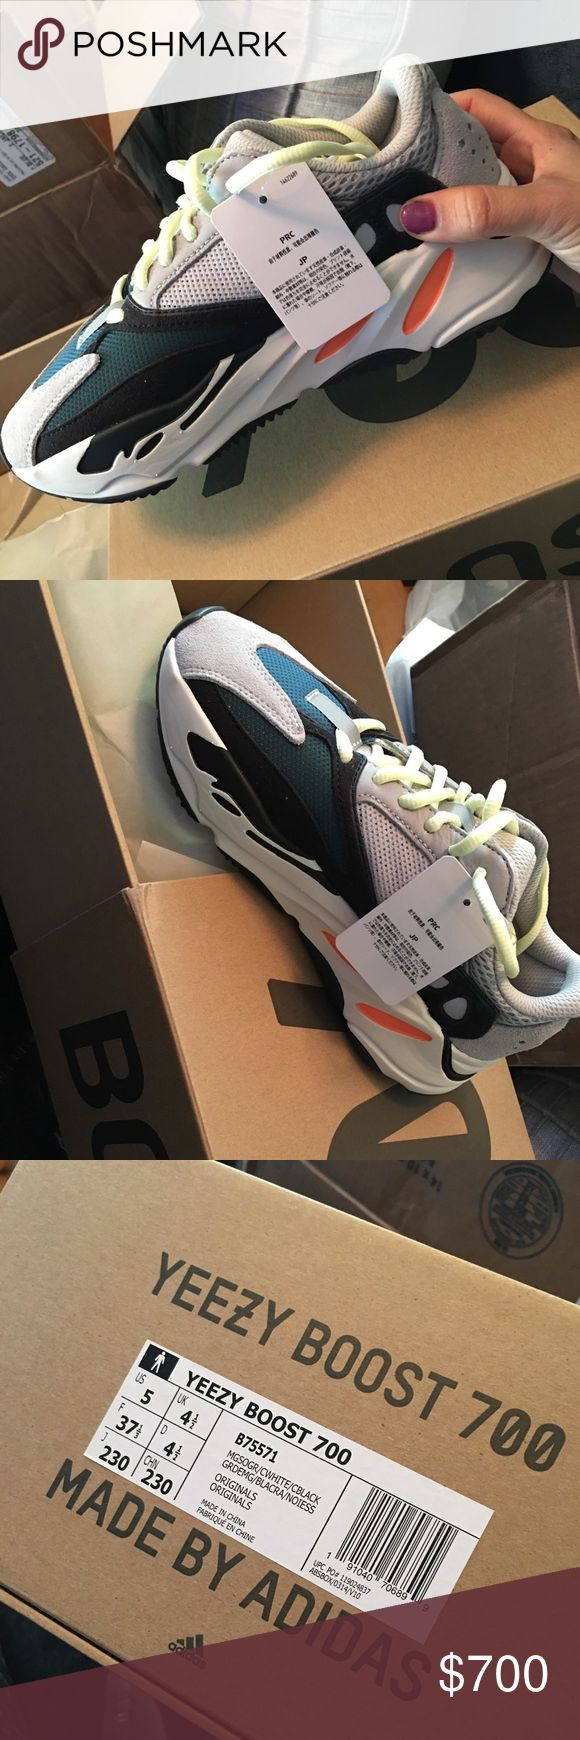 Authentic Yeezy  Boost 700 Wave Runner Authentic Yeezy Boost 700 Wave Runner for sale. Purchased off Yeezy supply website in August. 1000% authentic and brand new. Men's size 5 will fit Women's size 7. I never have purchased anything fake and these will go through authentication with Posh when purchased. Yeezy Shoes Athletic Shoes